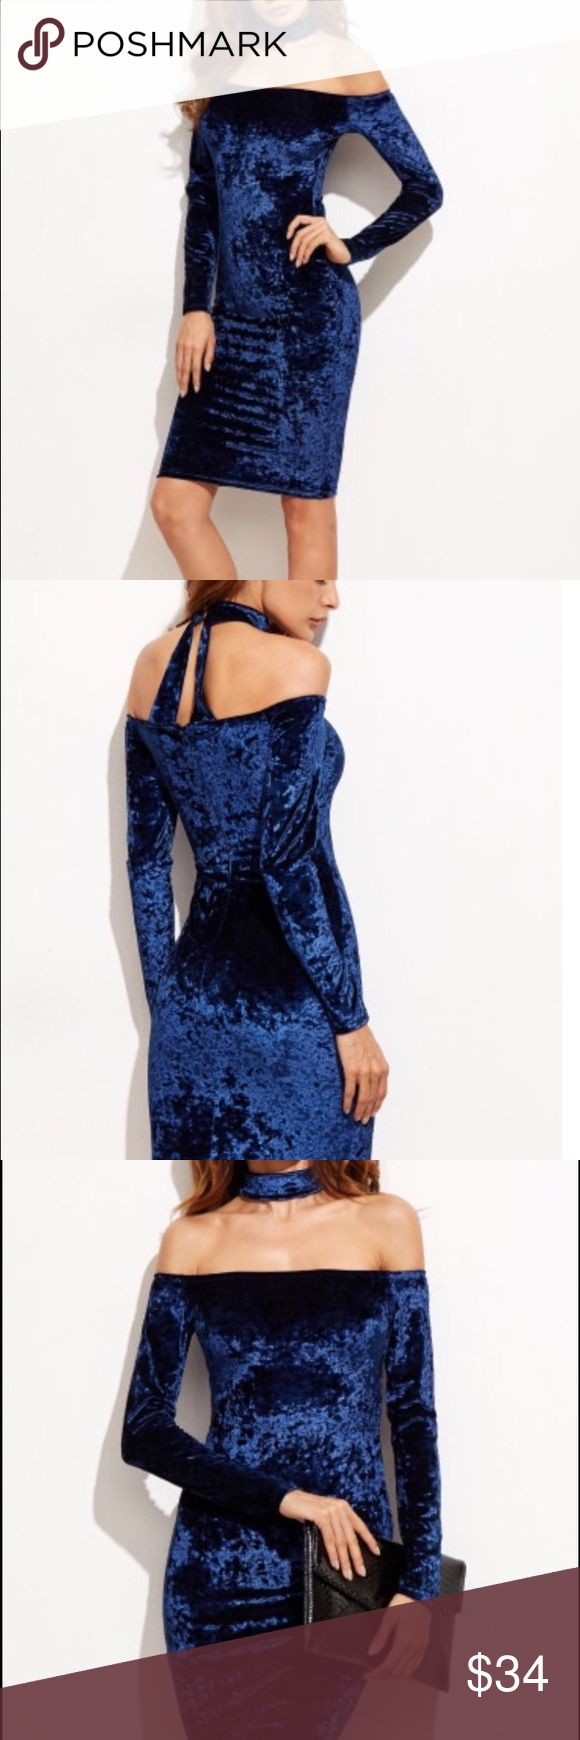 Blue Velvet Choker Cocktail Dress Blue velvet cocktail dress with back detail and attached choker. Bought online and never wore. Size Medium. See pic of description for reference. Dresses Mini